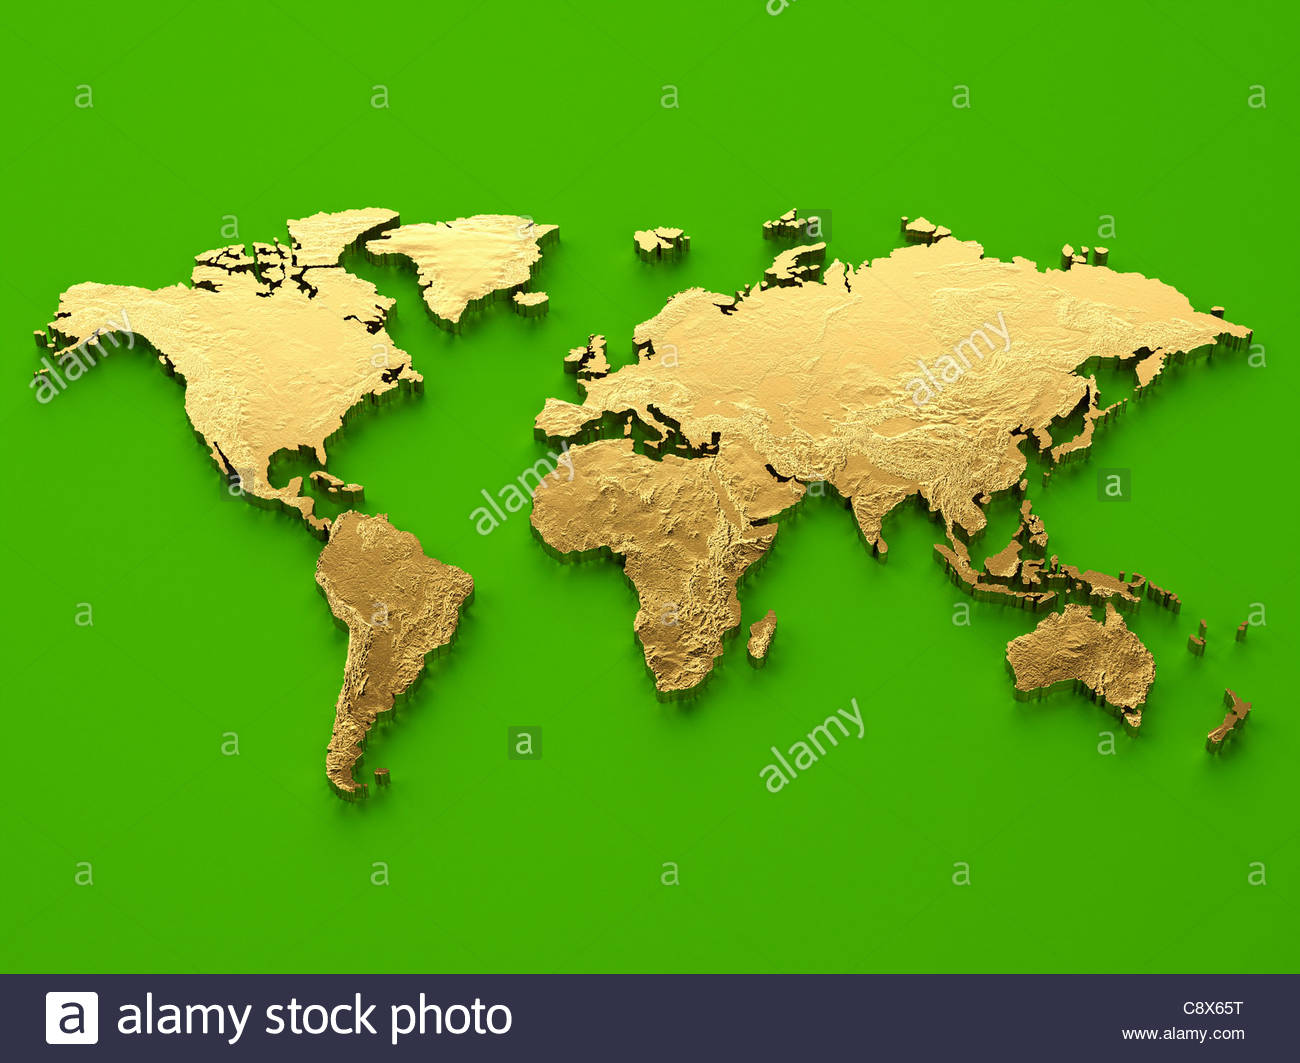 Gold world map on green background stock photo royalty free image gold world map on green background gumiabroncs Gallery